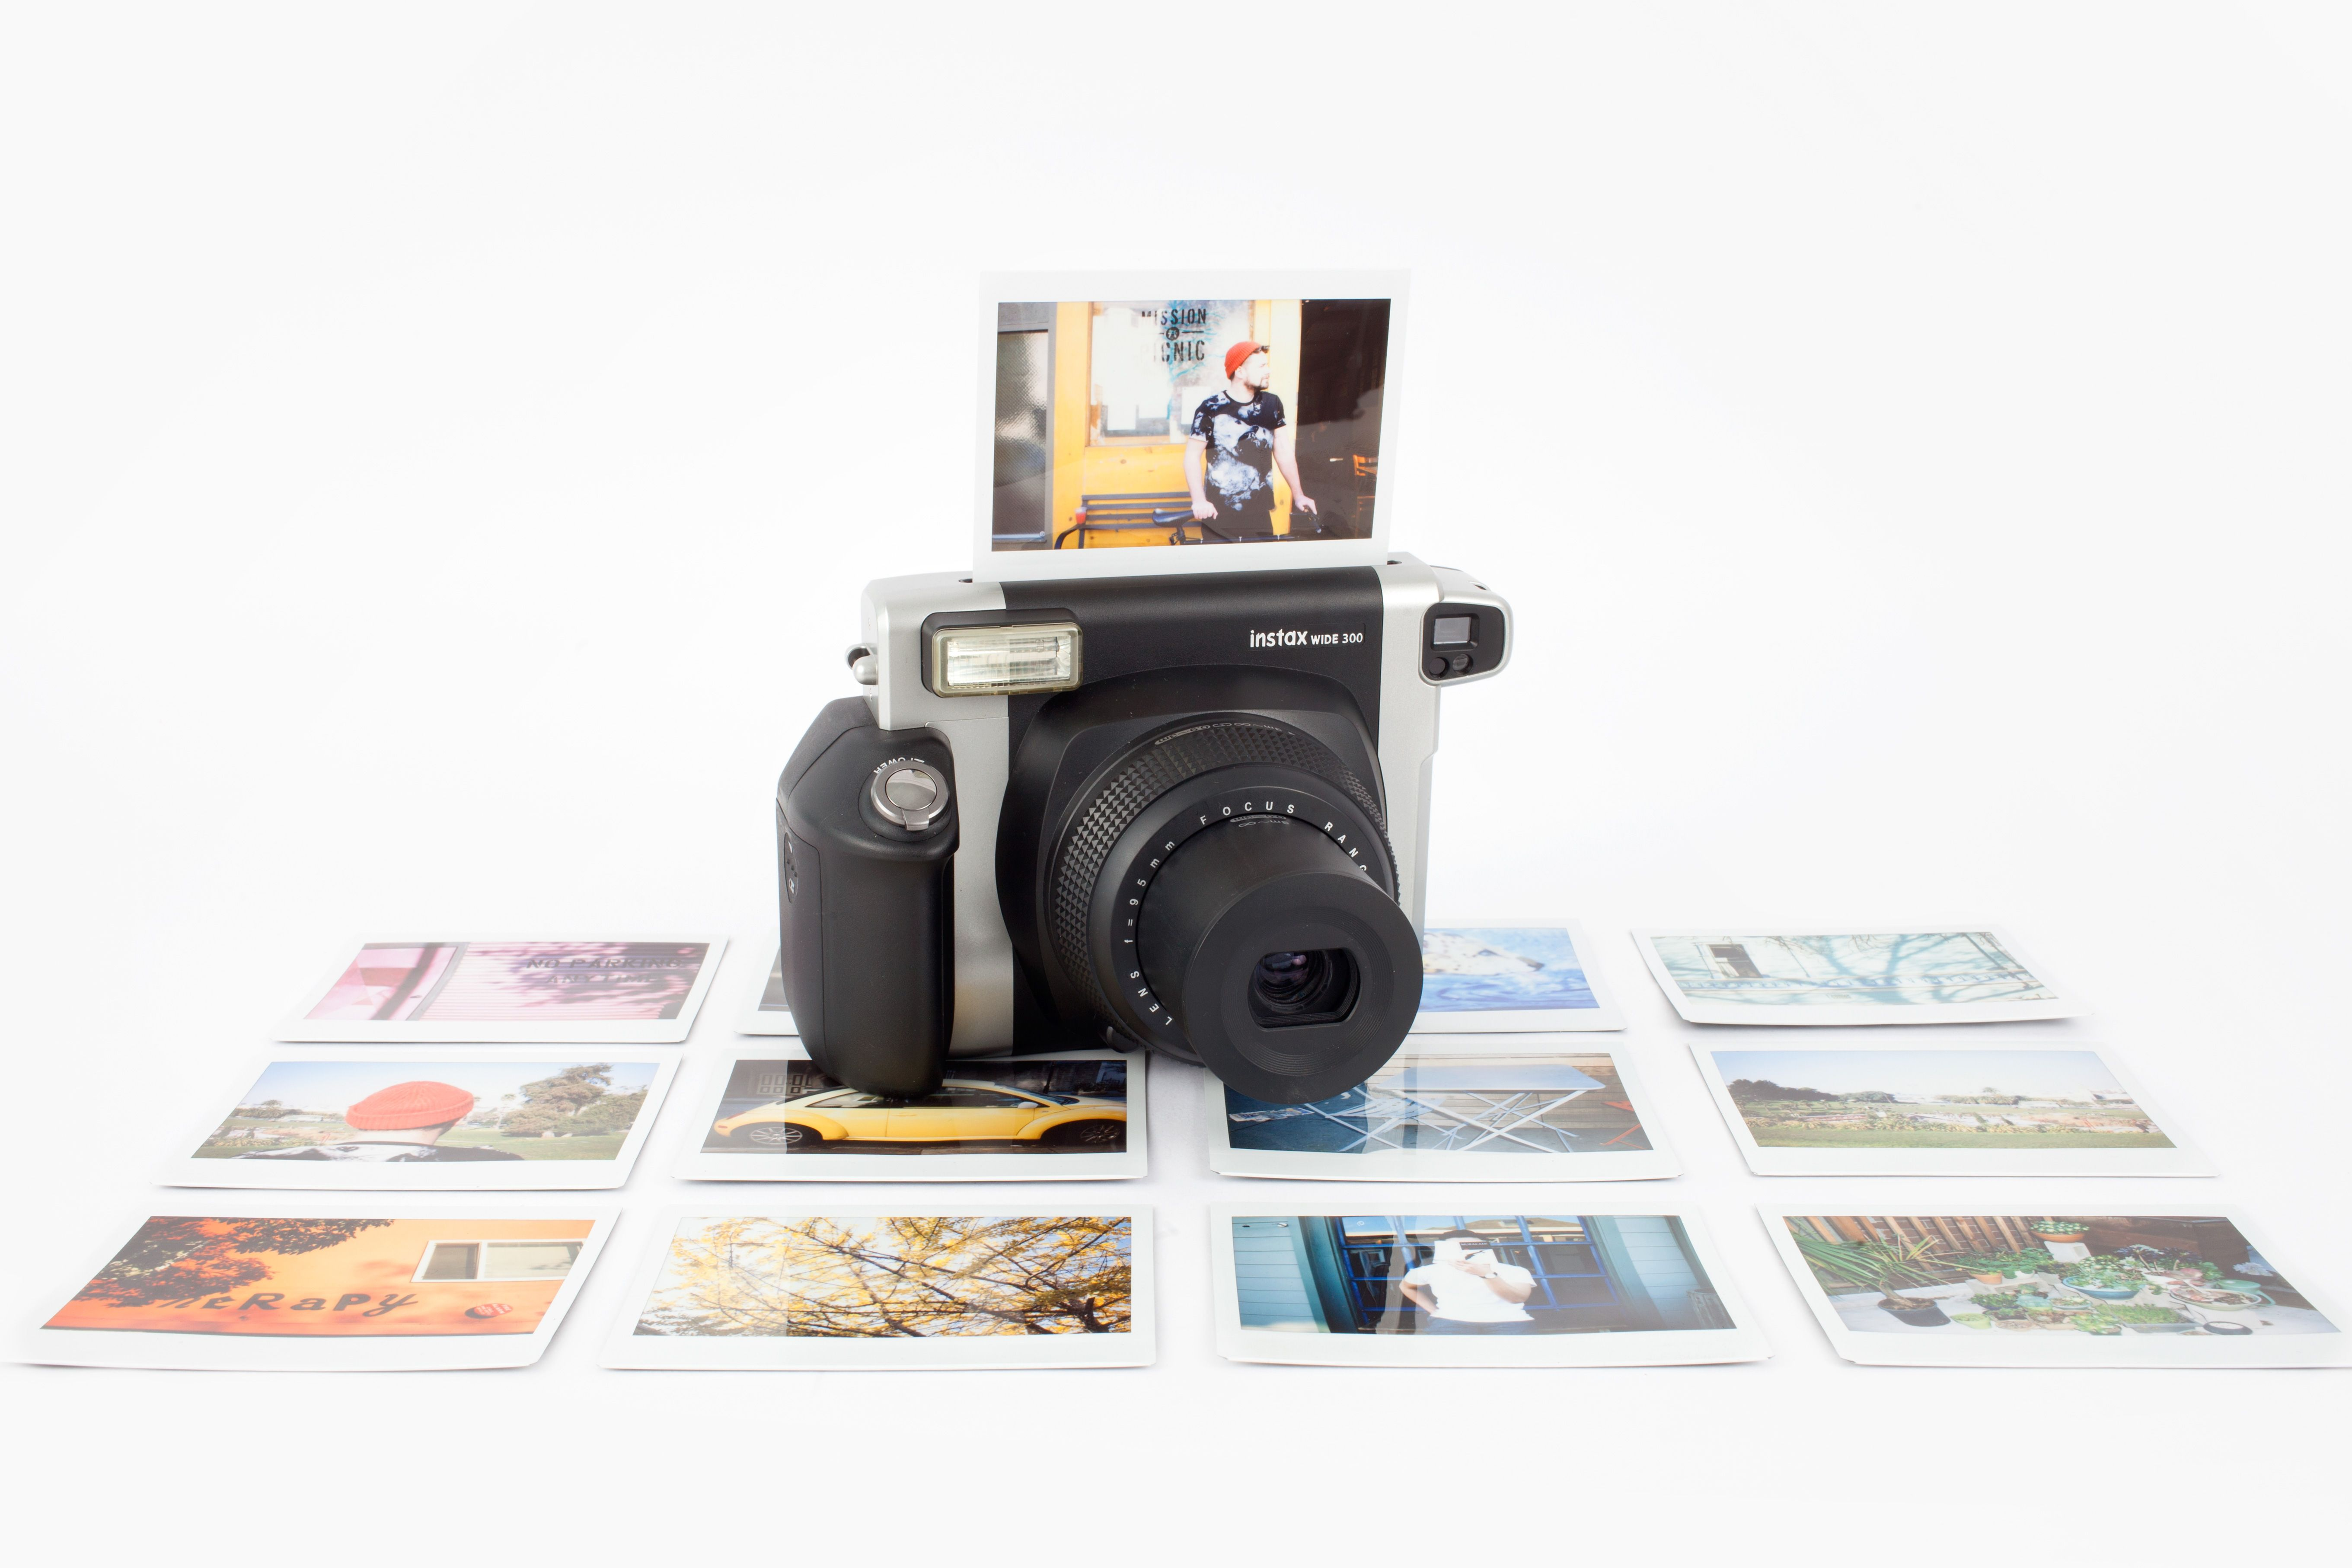 Instax Wide 300 Instant Camera - The newest Fuji Instax ...